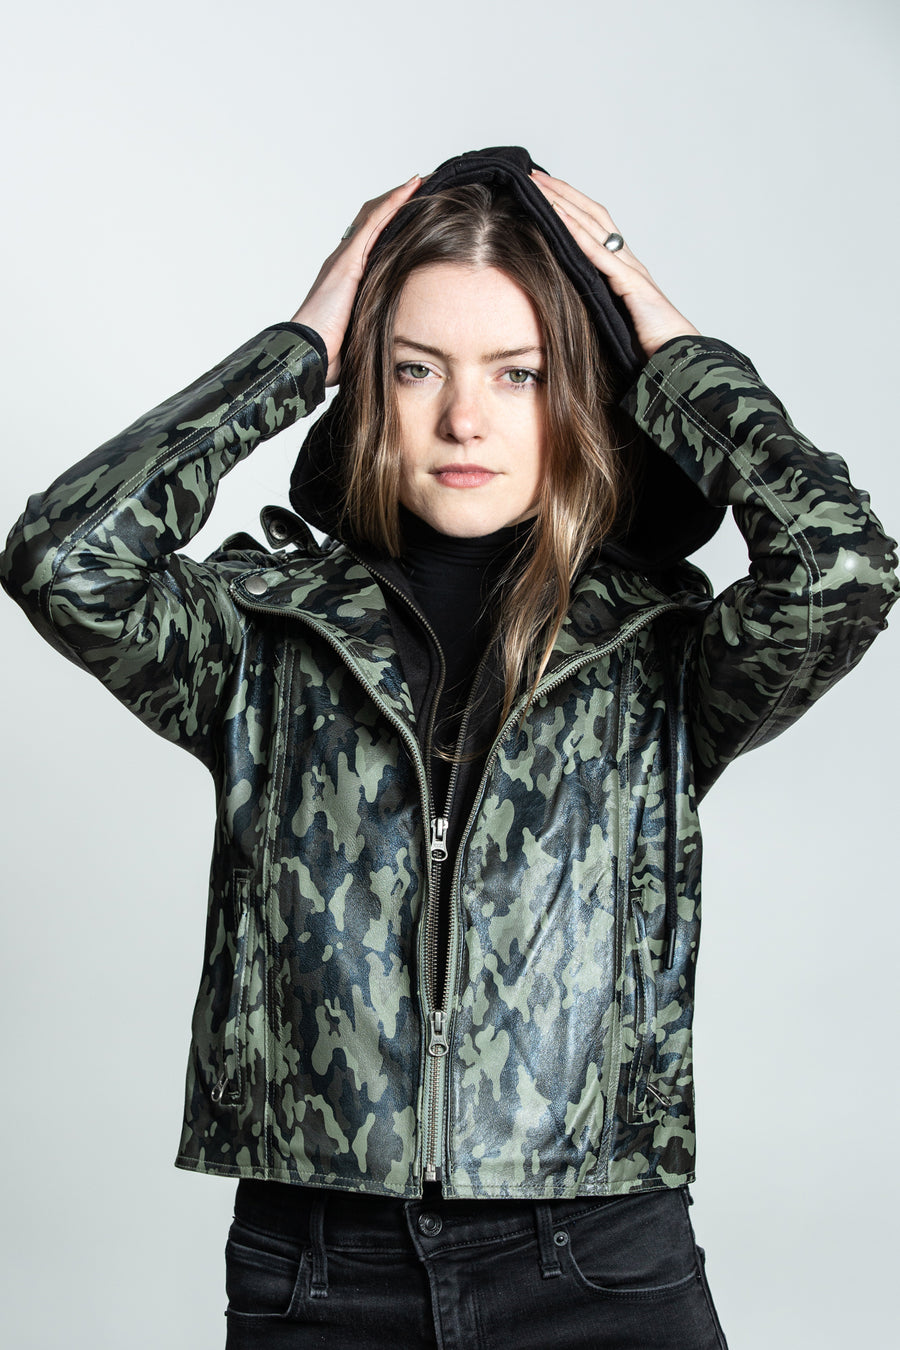 Molly Camo Print Burnished Leather - ShopMadisonbelle